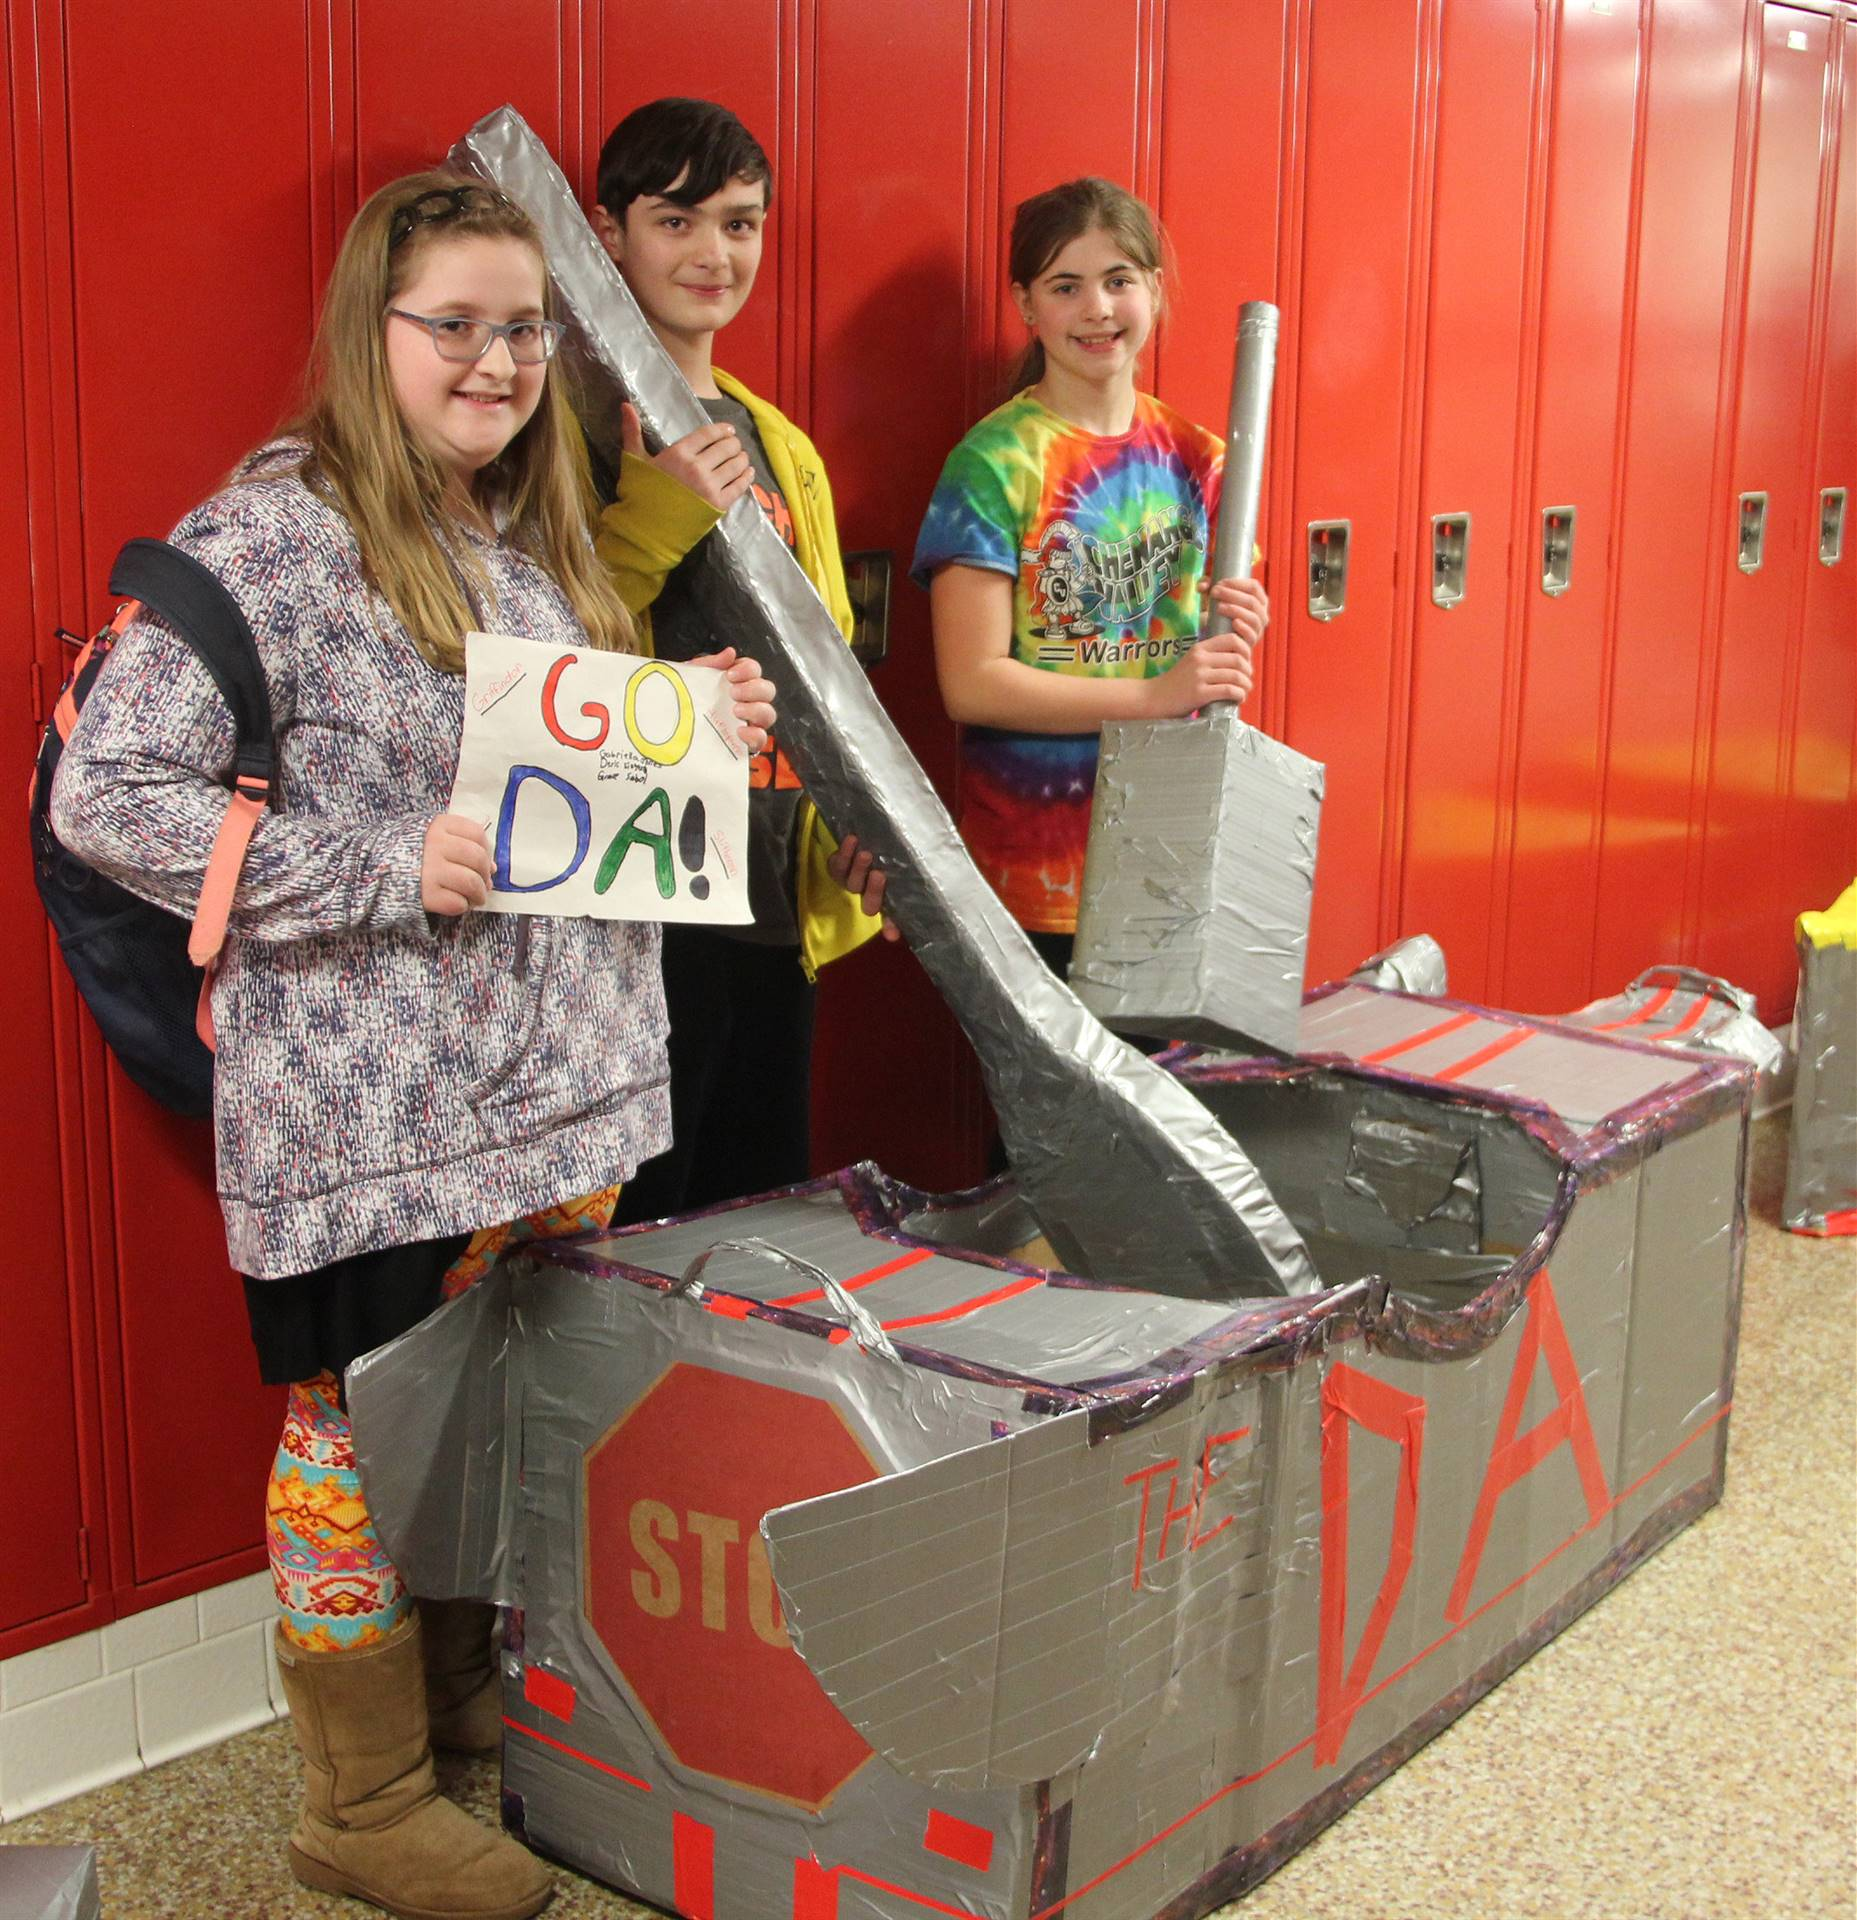 three students standing with cardboard boat